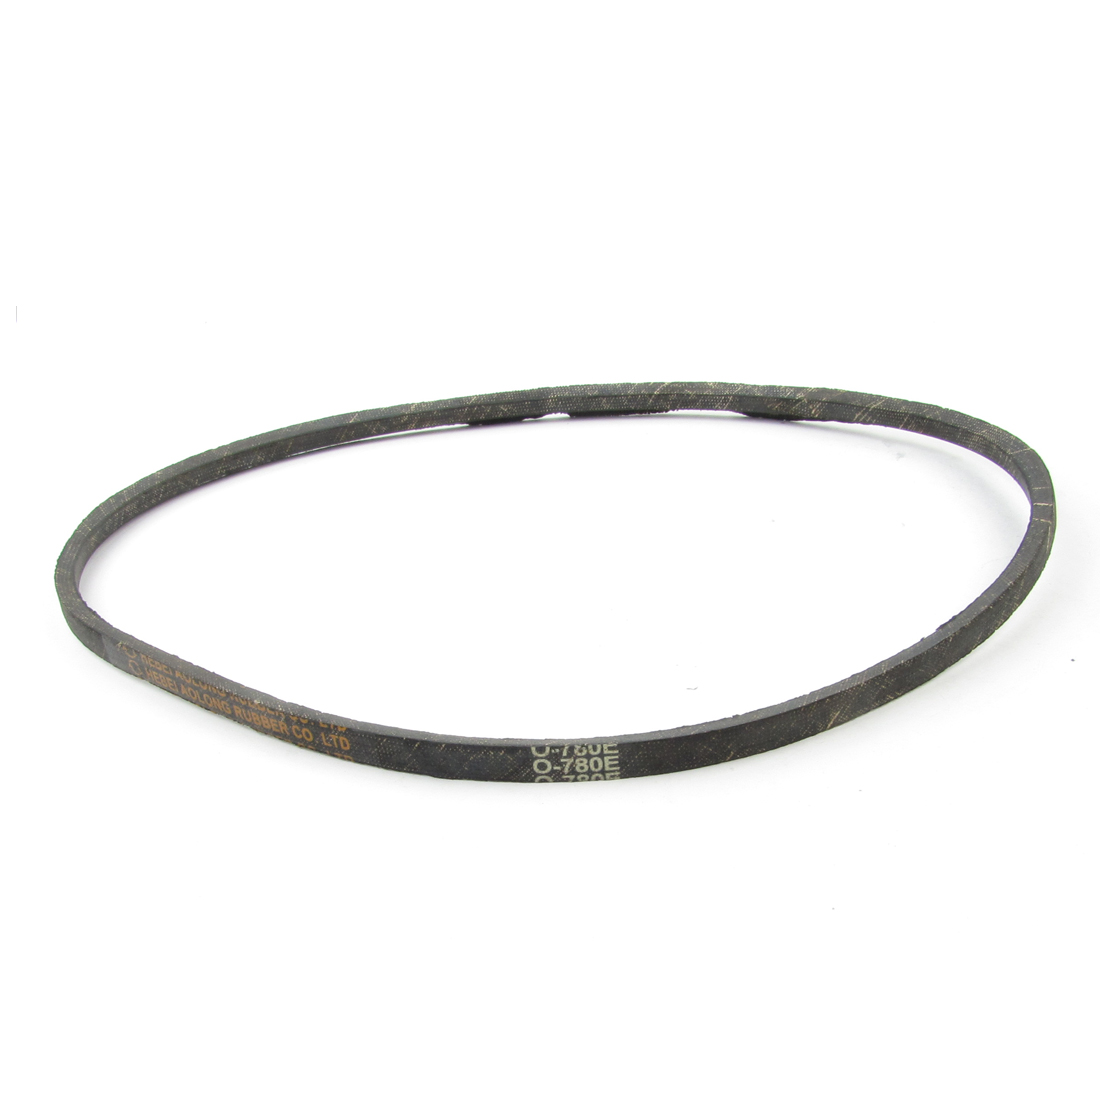 "780cm 30 45/64"" Inner Girth Rubber Transmission Belt for Washing Machine"